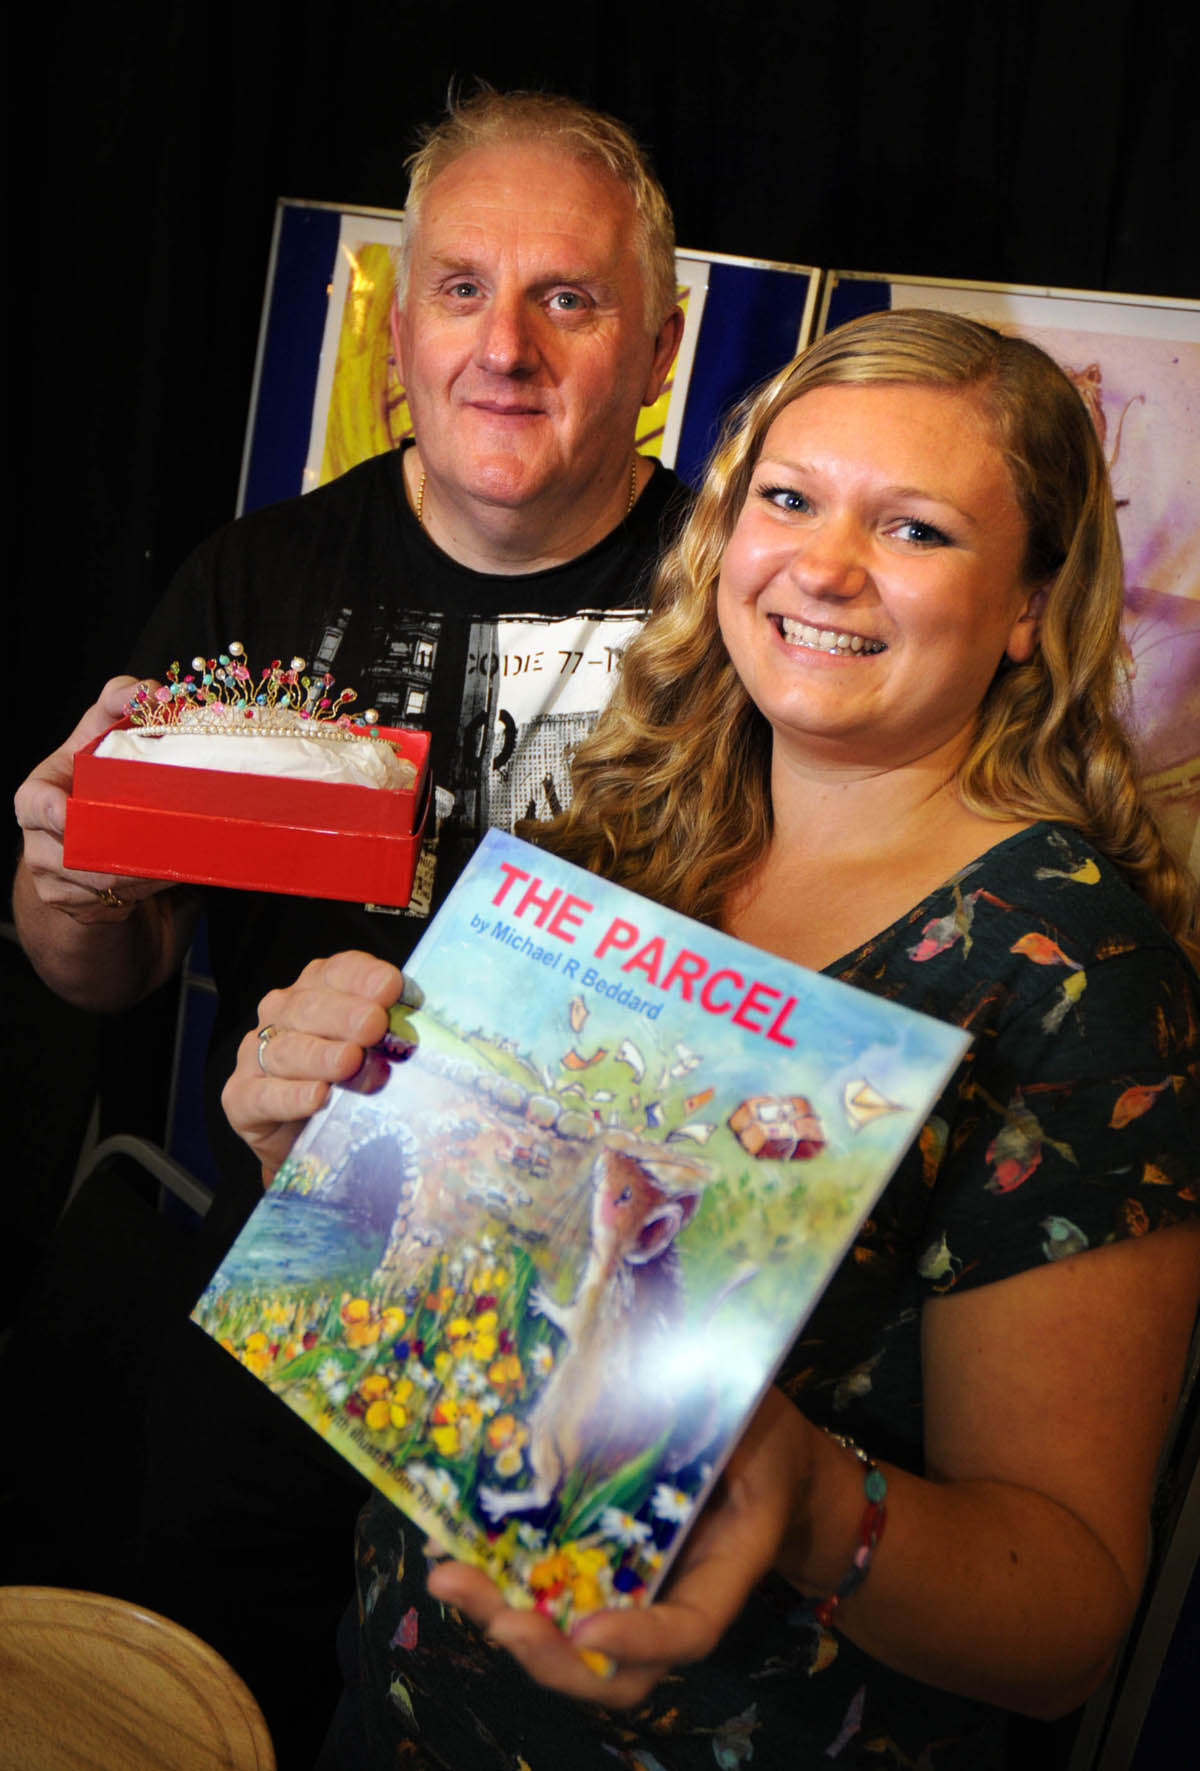 Mike Beddard, author of The Parcel, with illustrator Rebecca Yoxall.